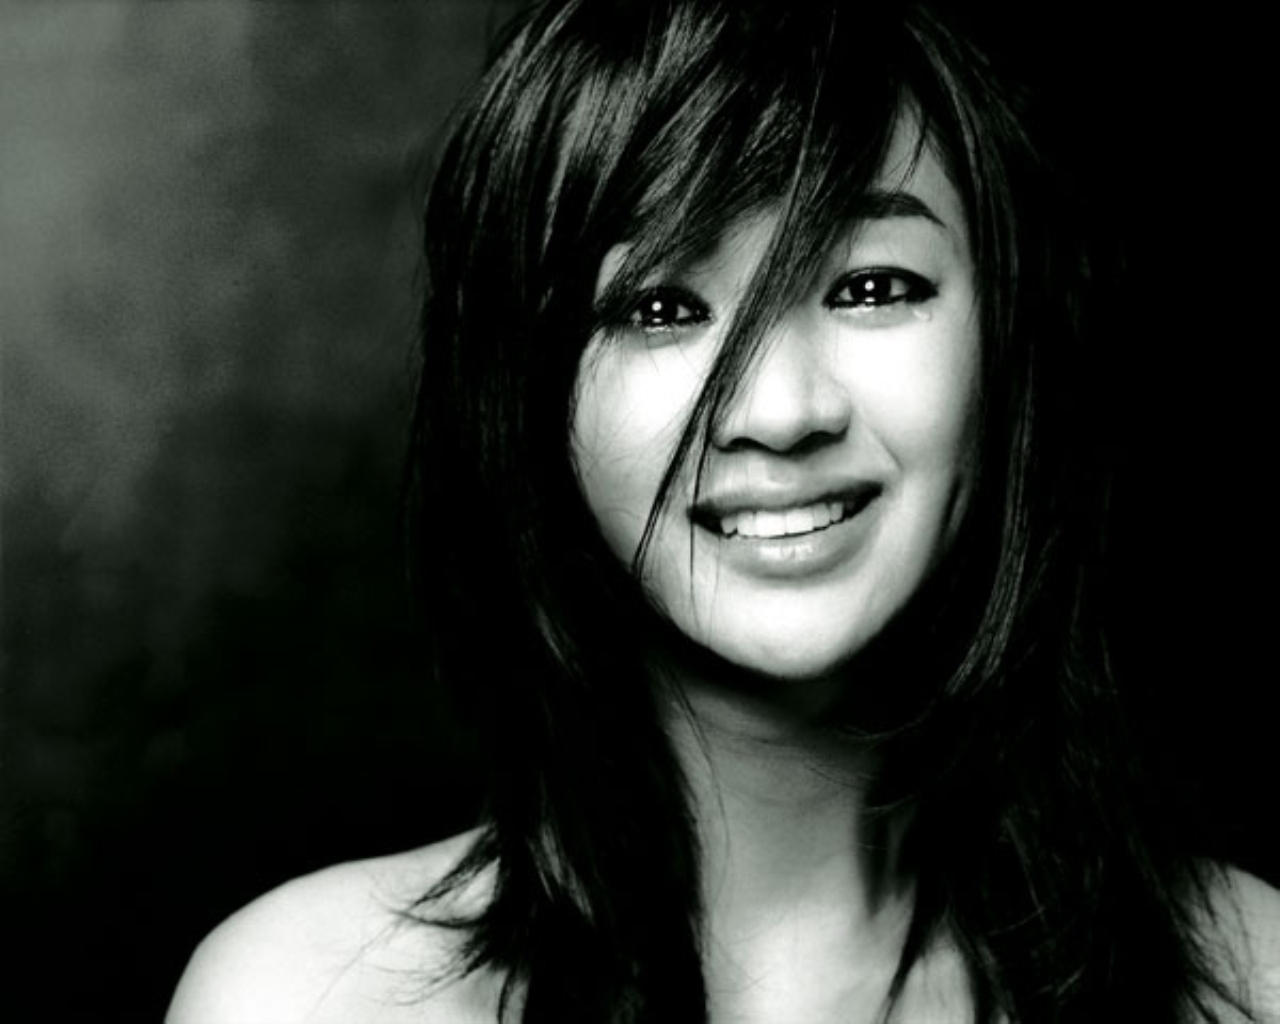 Soo Ae Chooses Yunho over Kwon Sang Woo as Her Ideal Type